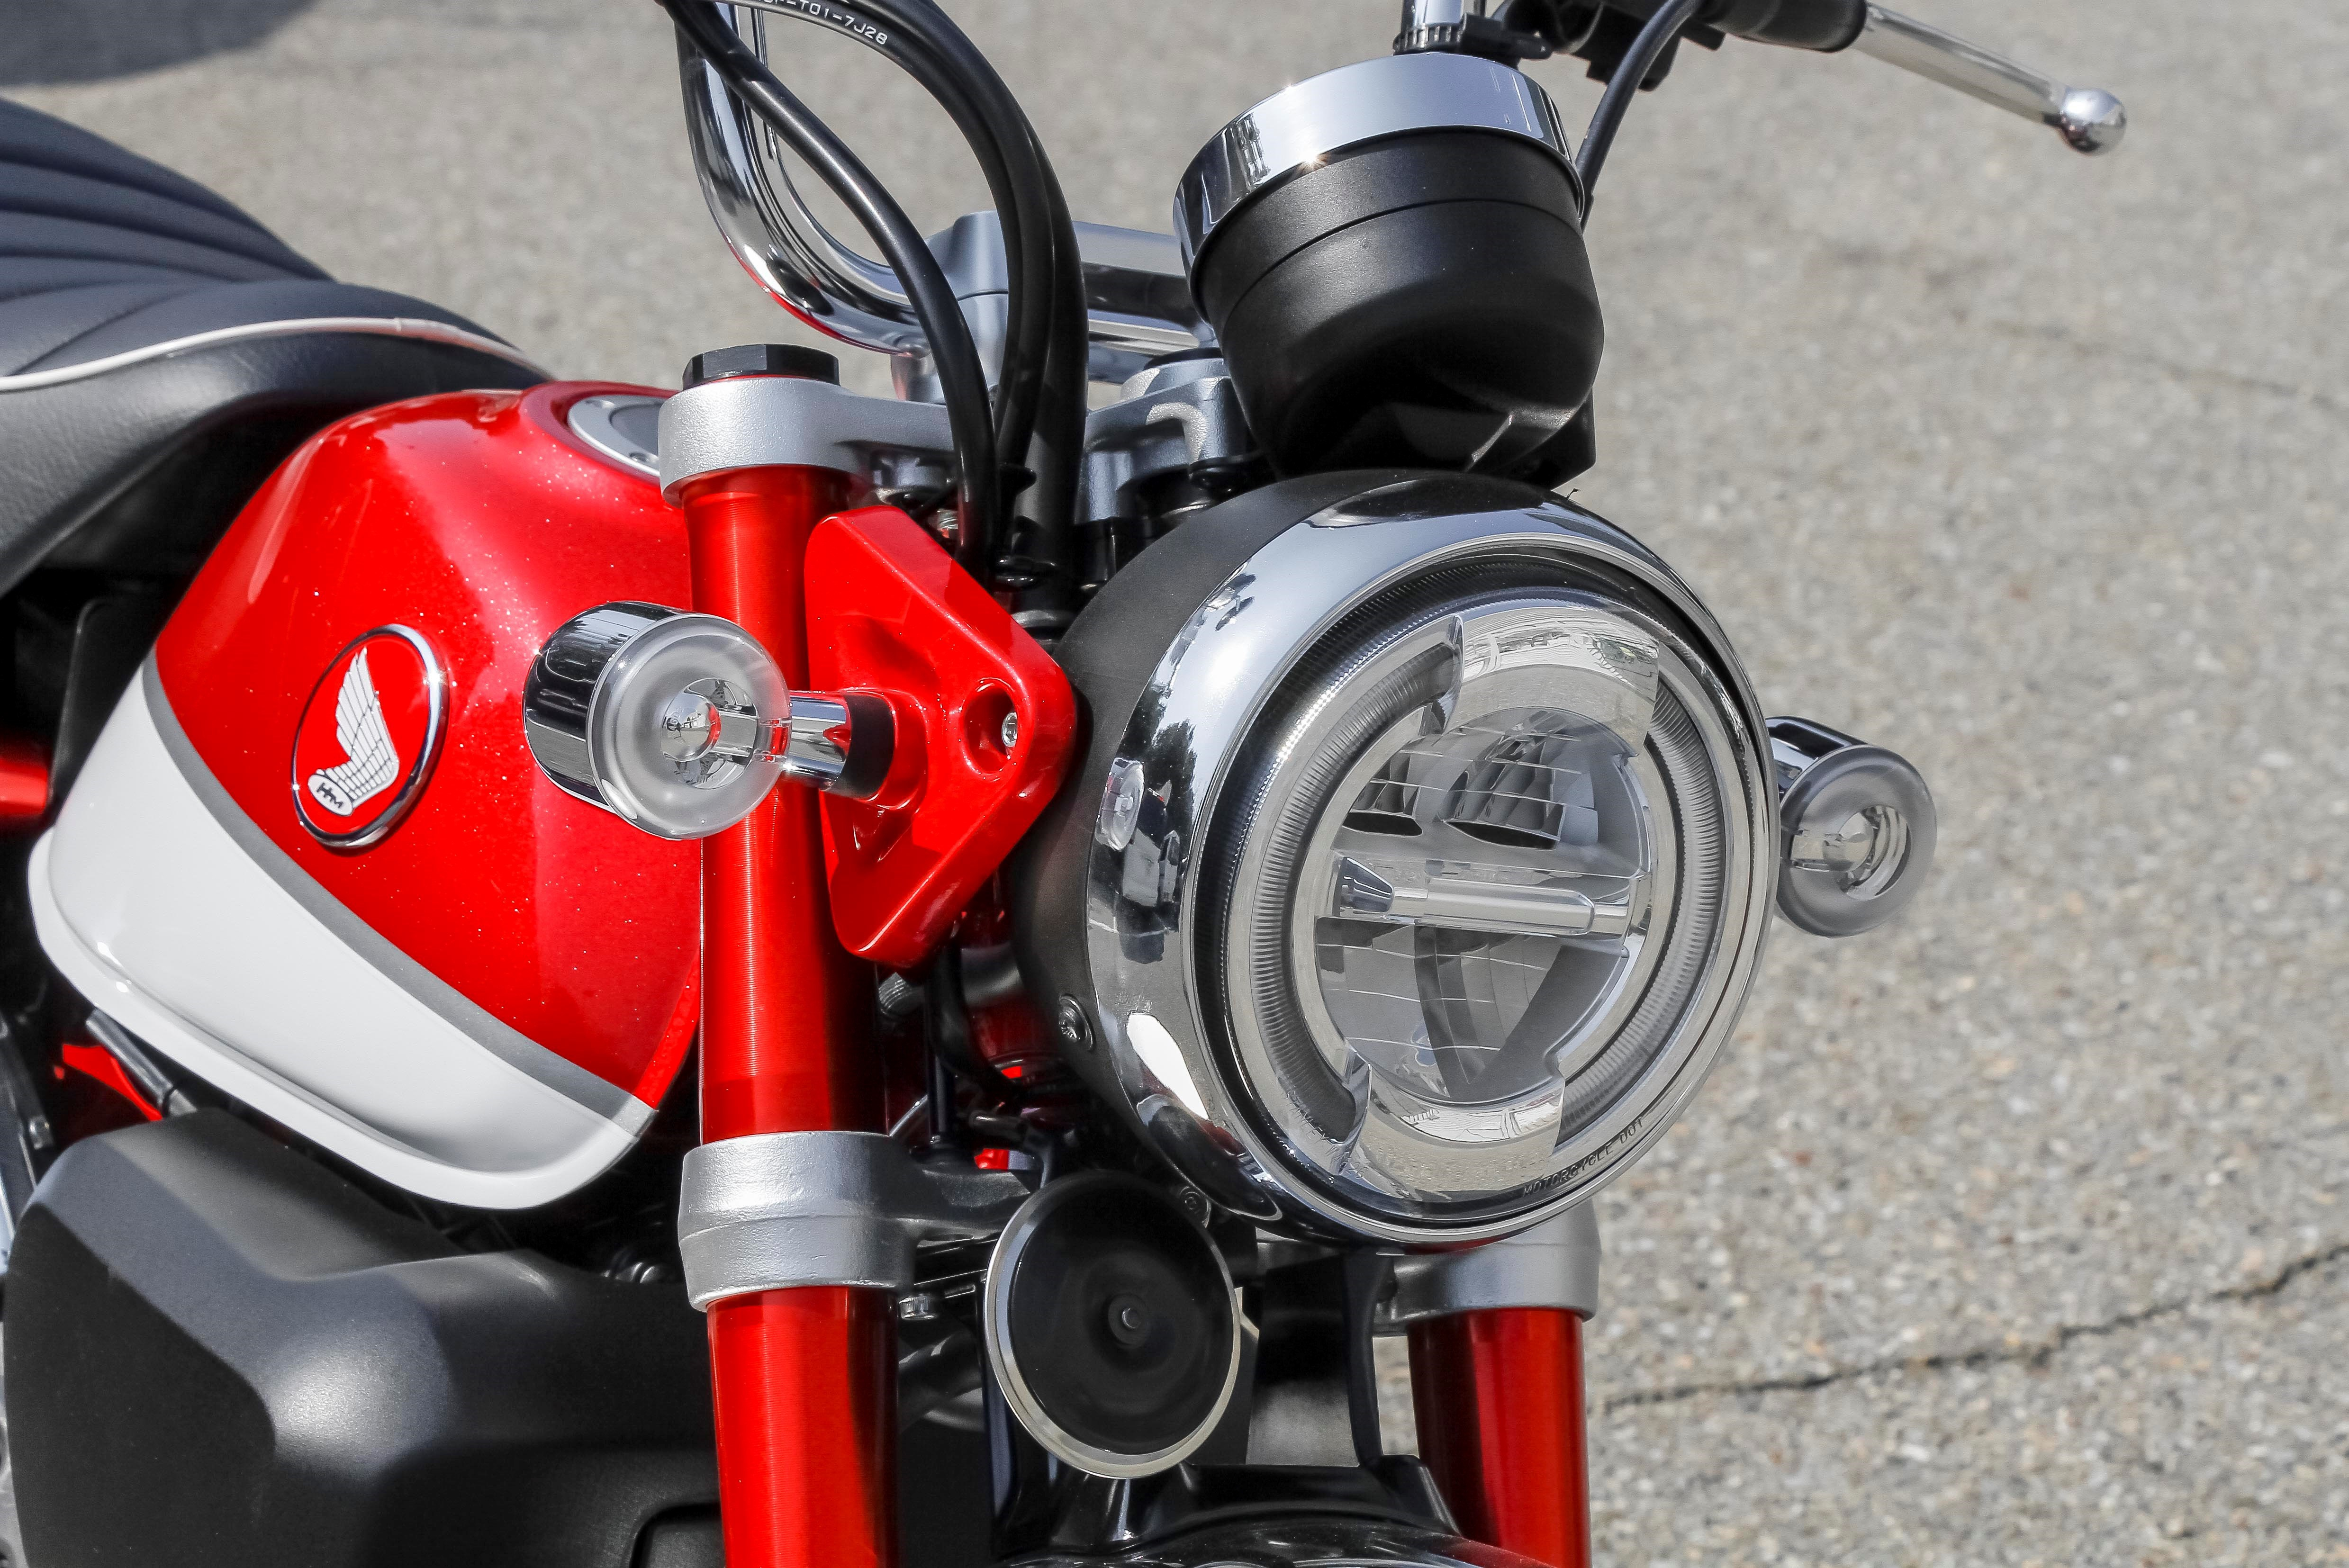 A full LED headlight gives good visibility